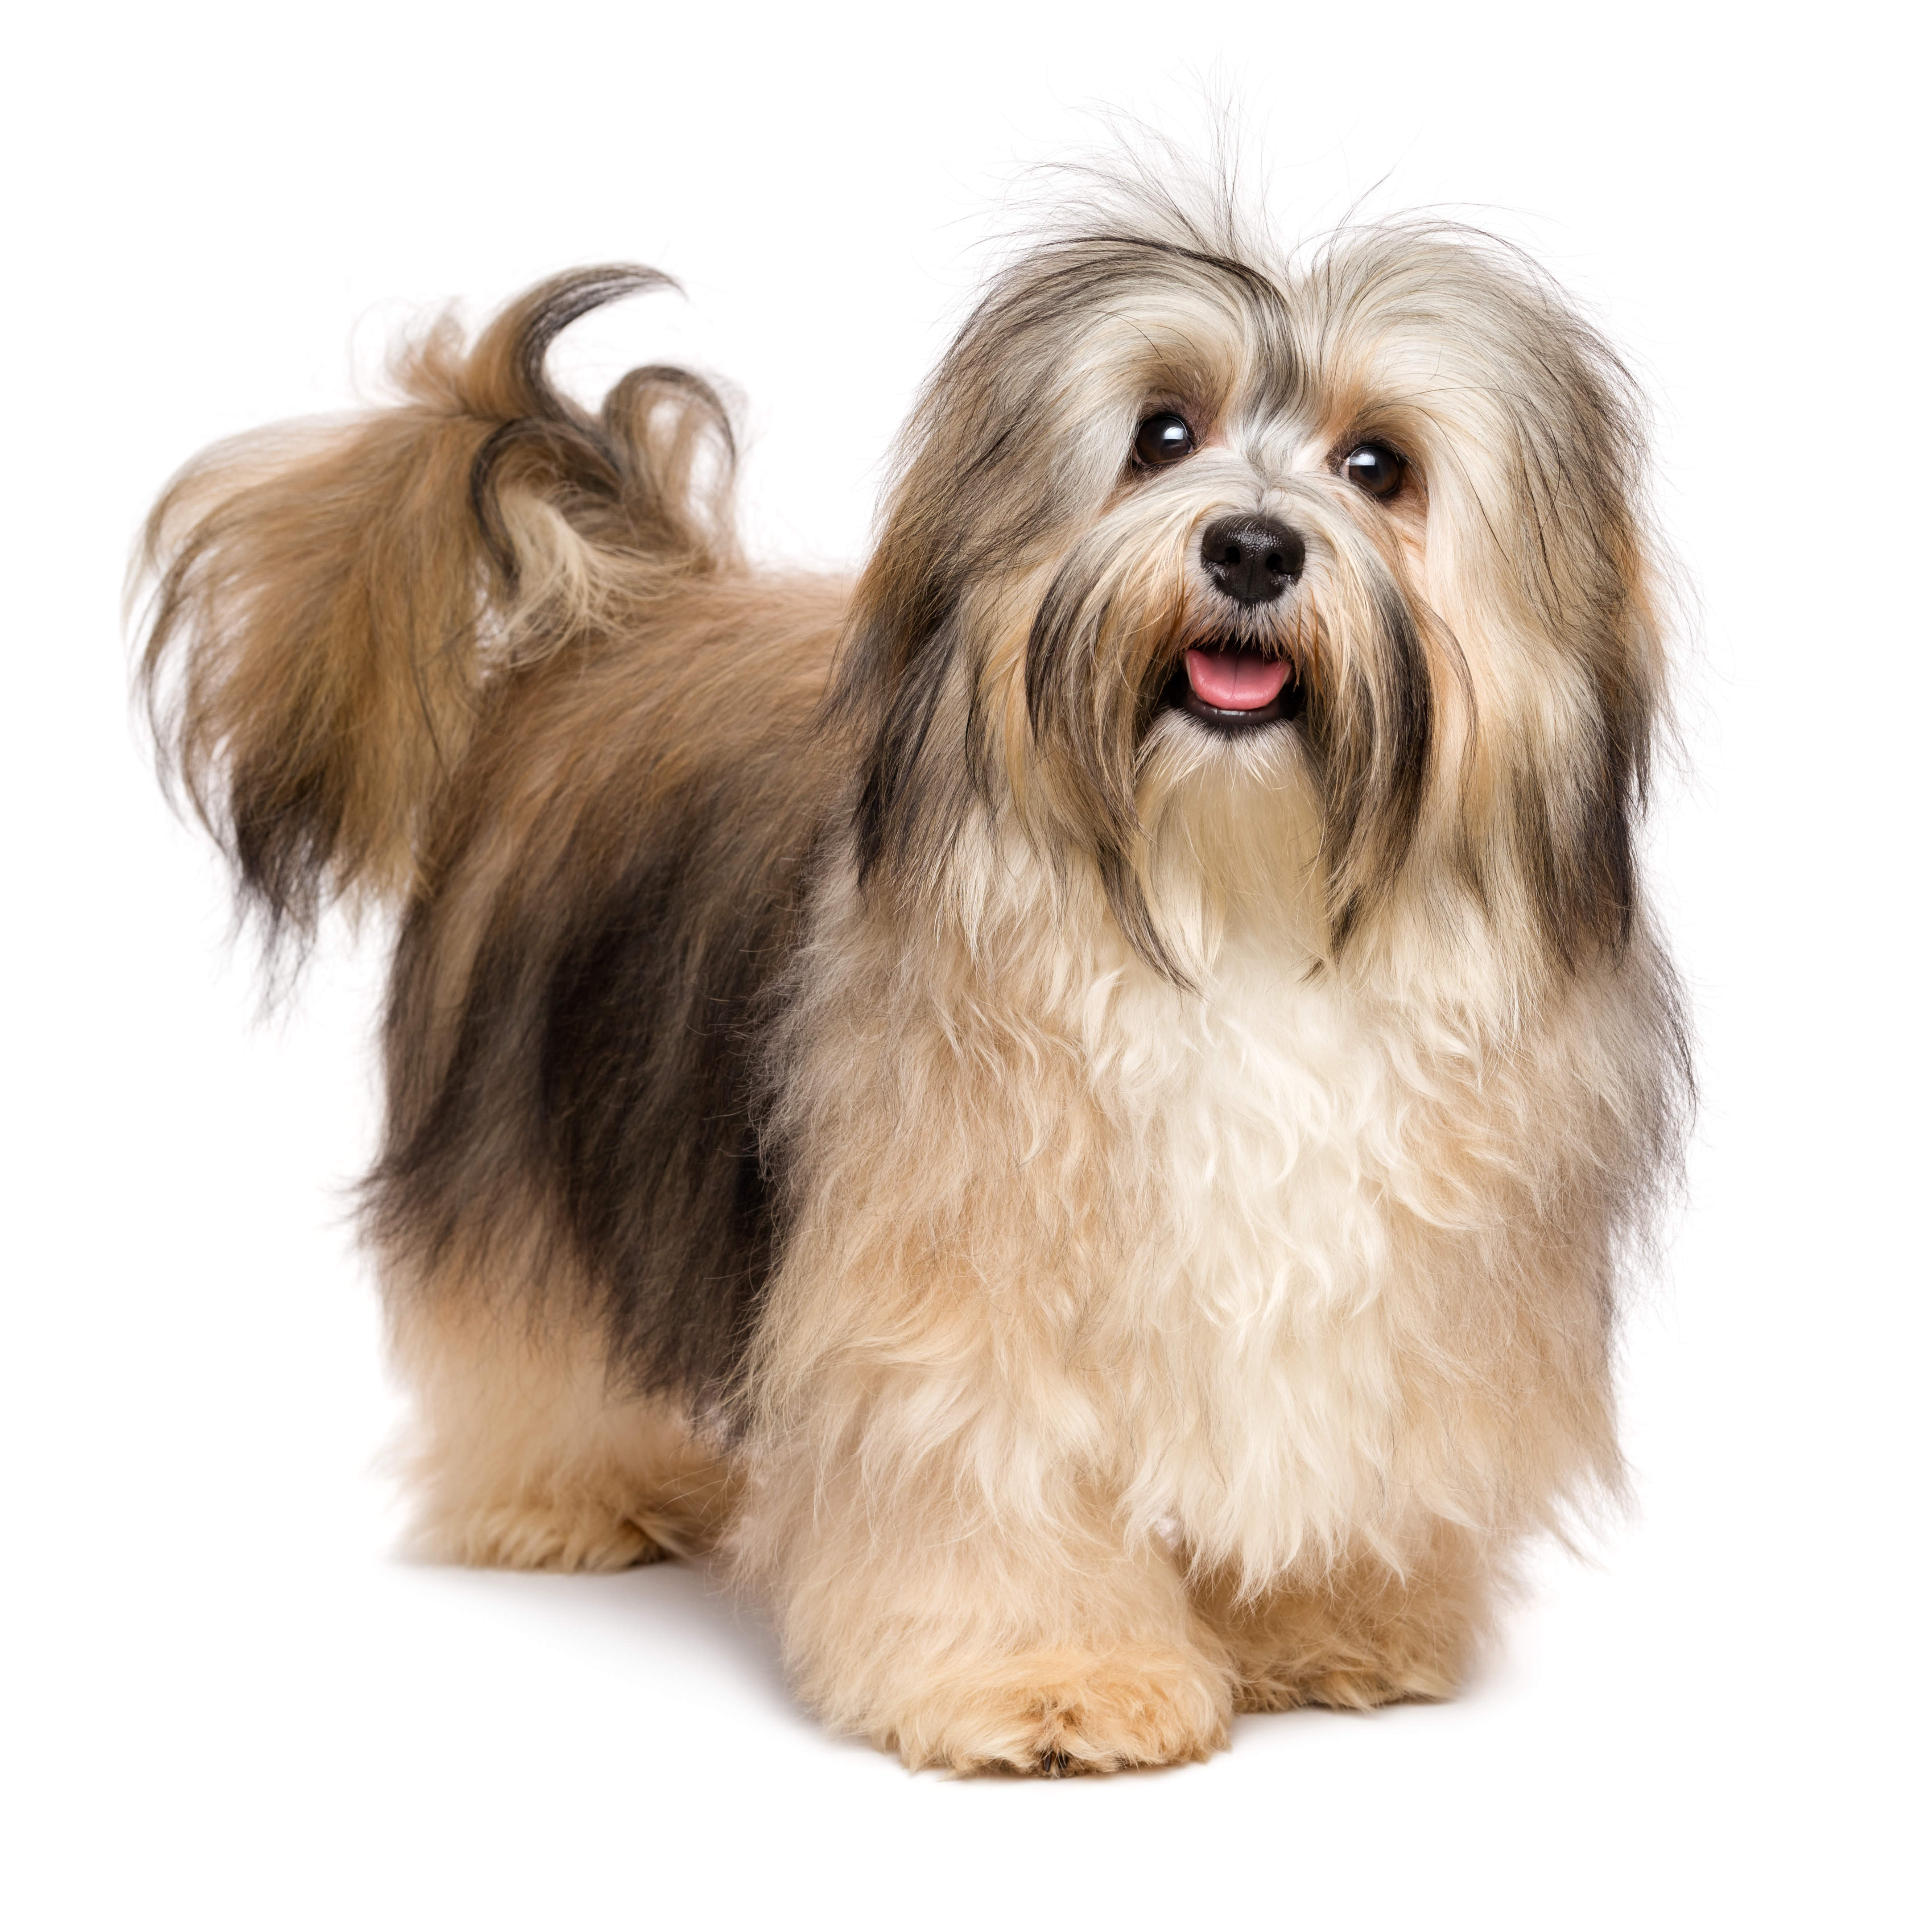 Havanese dog standing in front of a white background